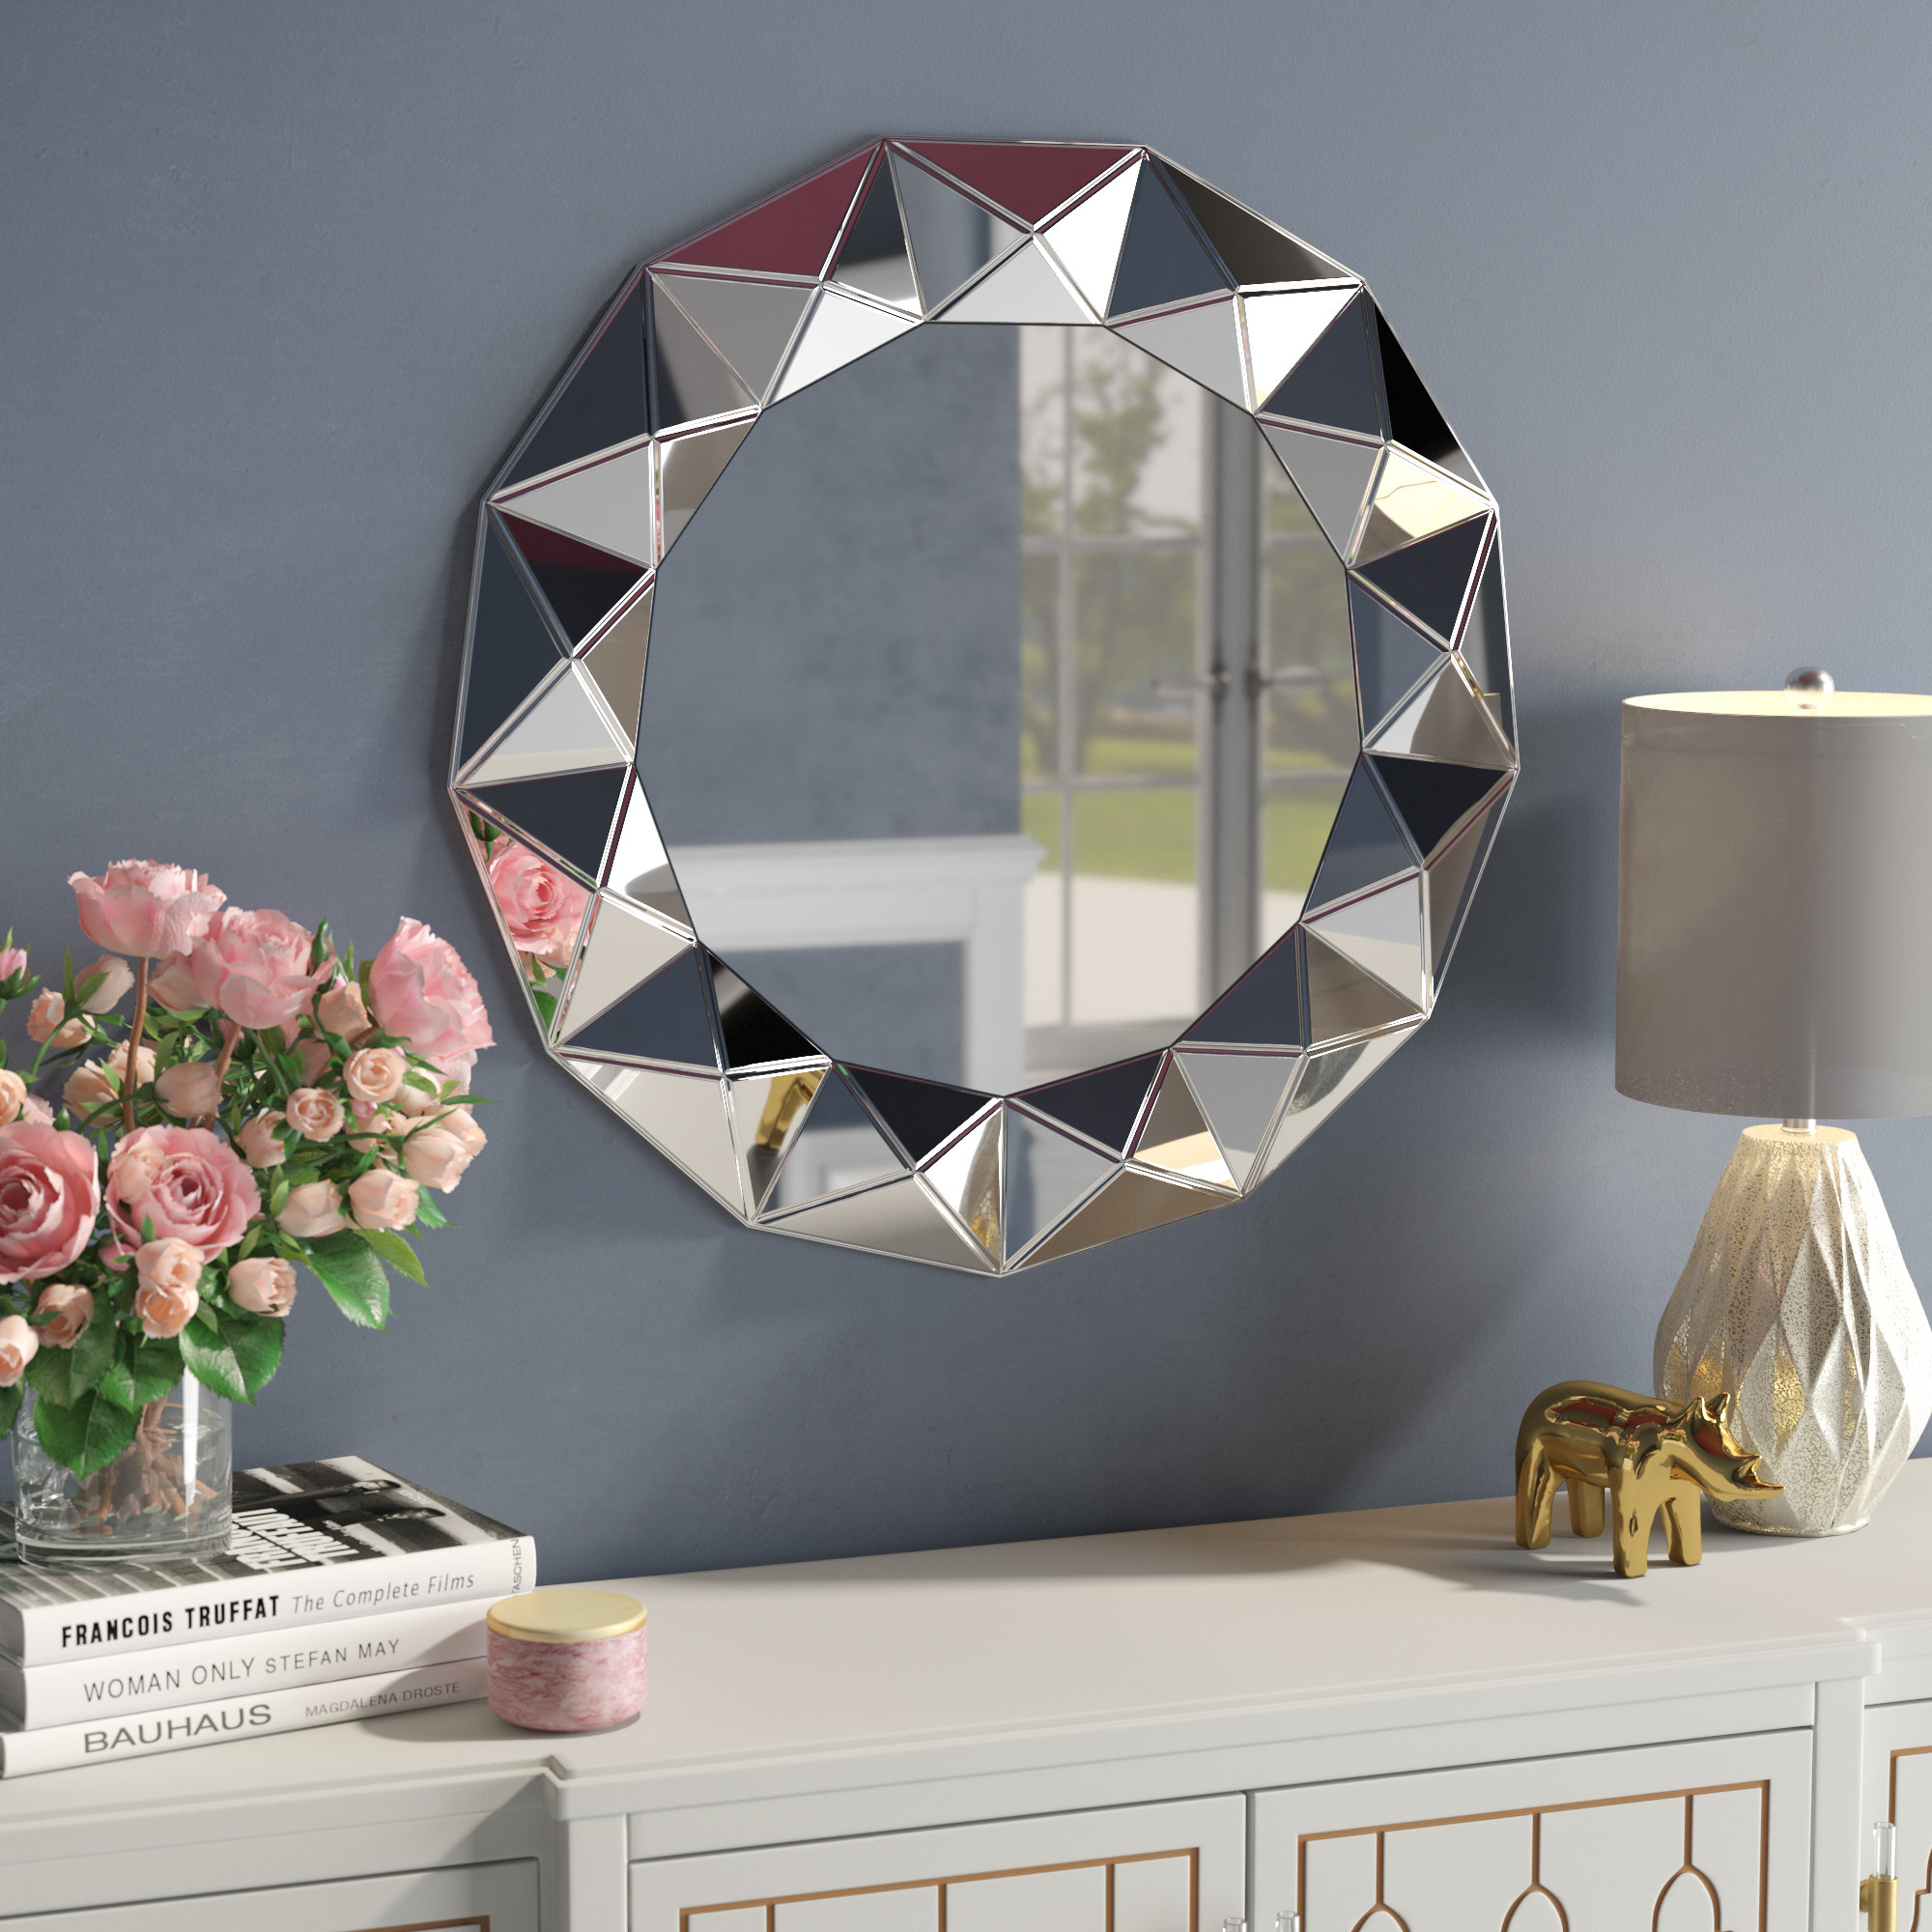 Traditional Round Decorative Wall Mirror Regarding Decorative Round Wall Mirrors (Image 20 of 20)